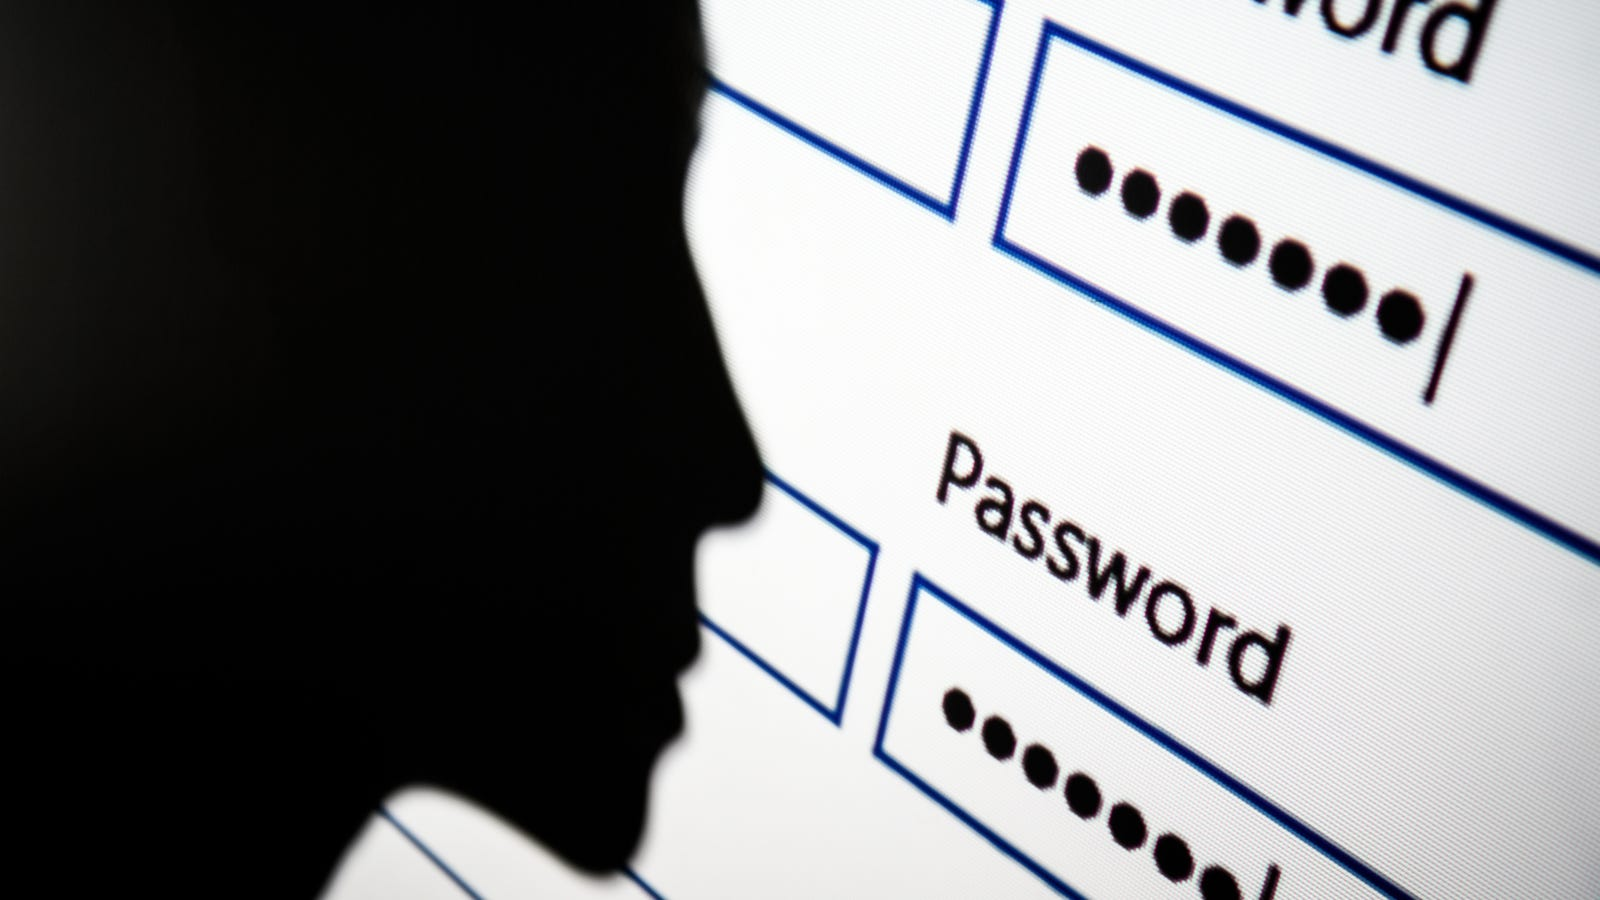 Why I do not give my husband my passwords